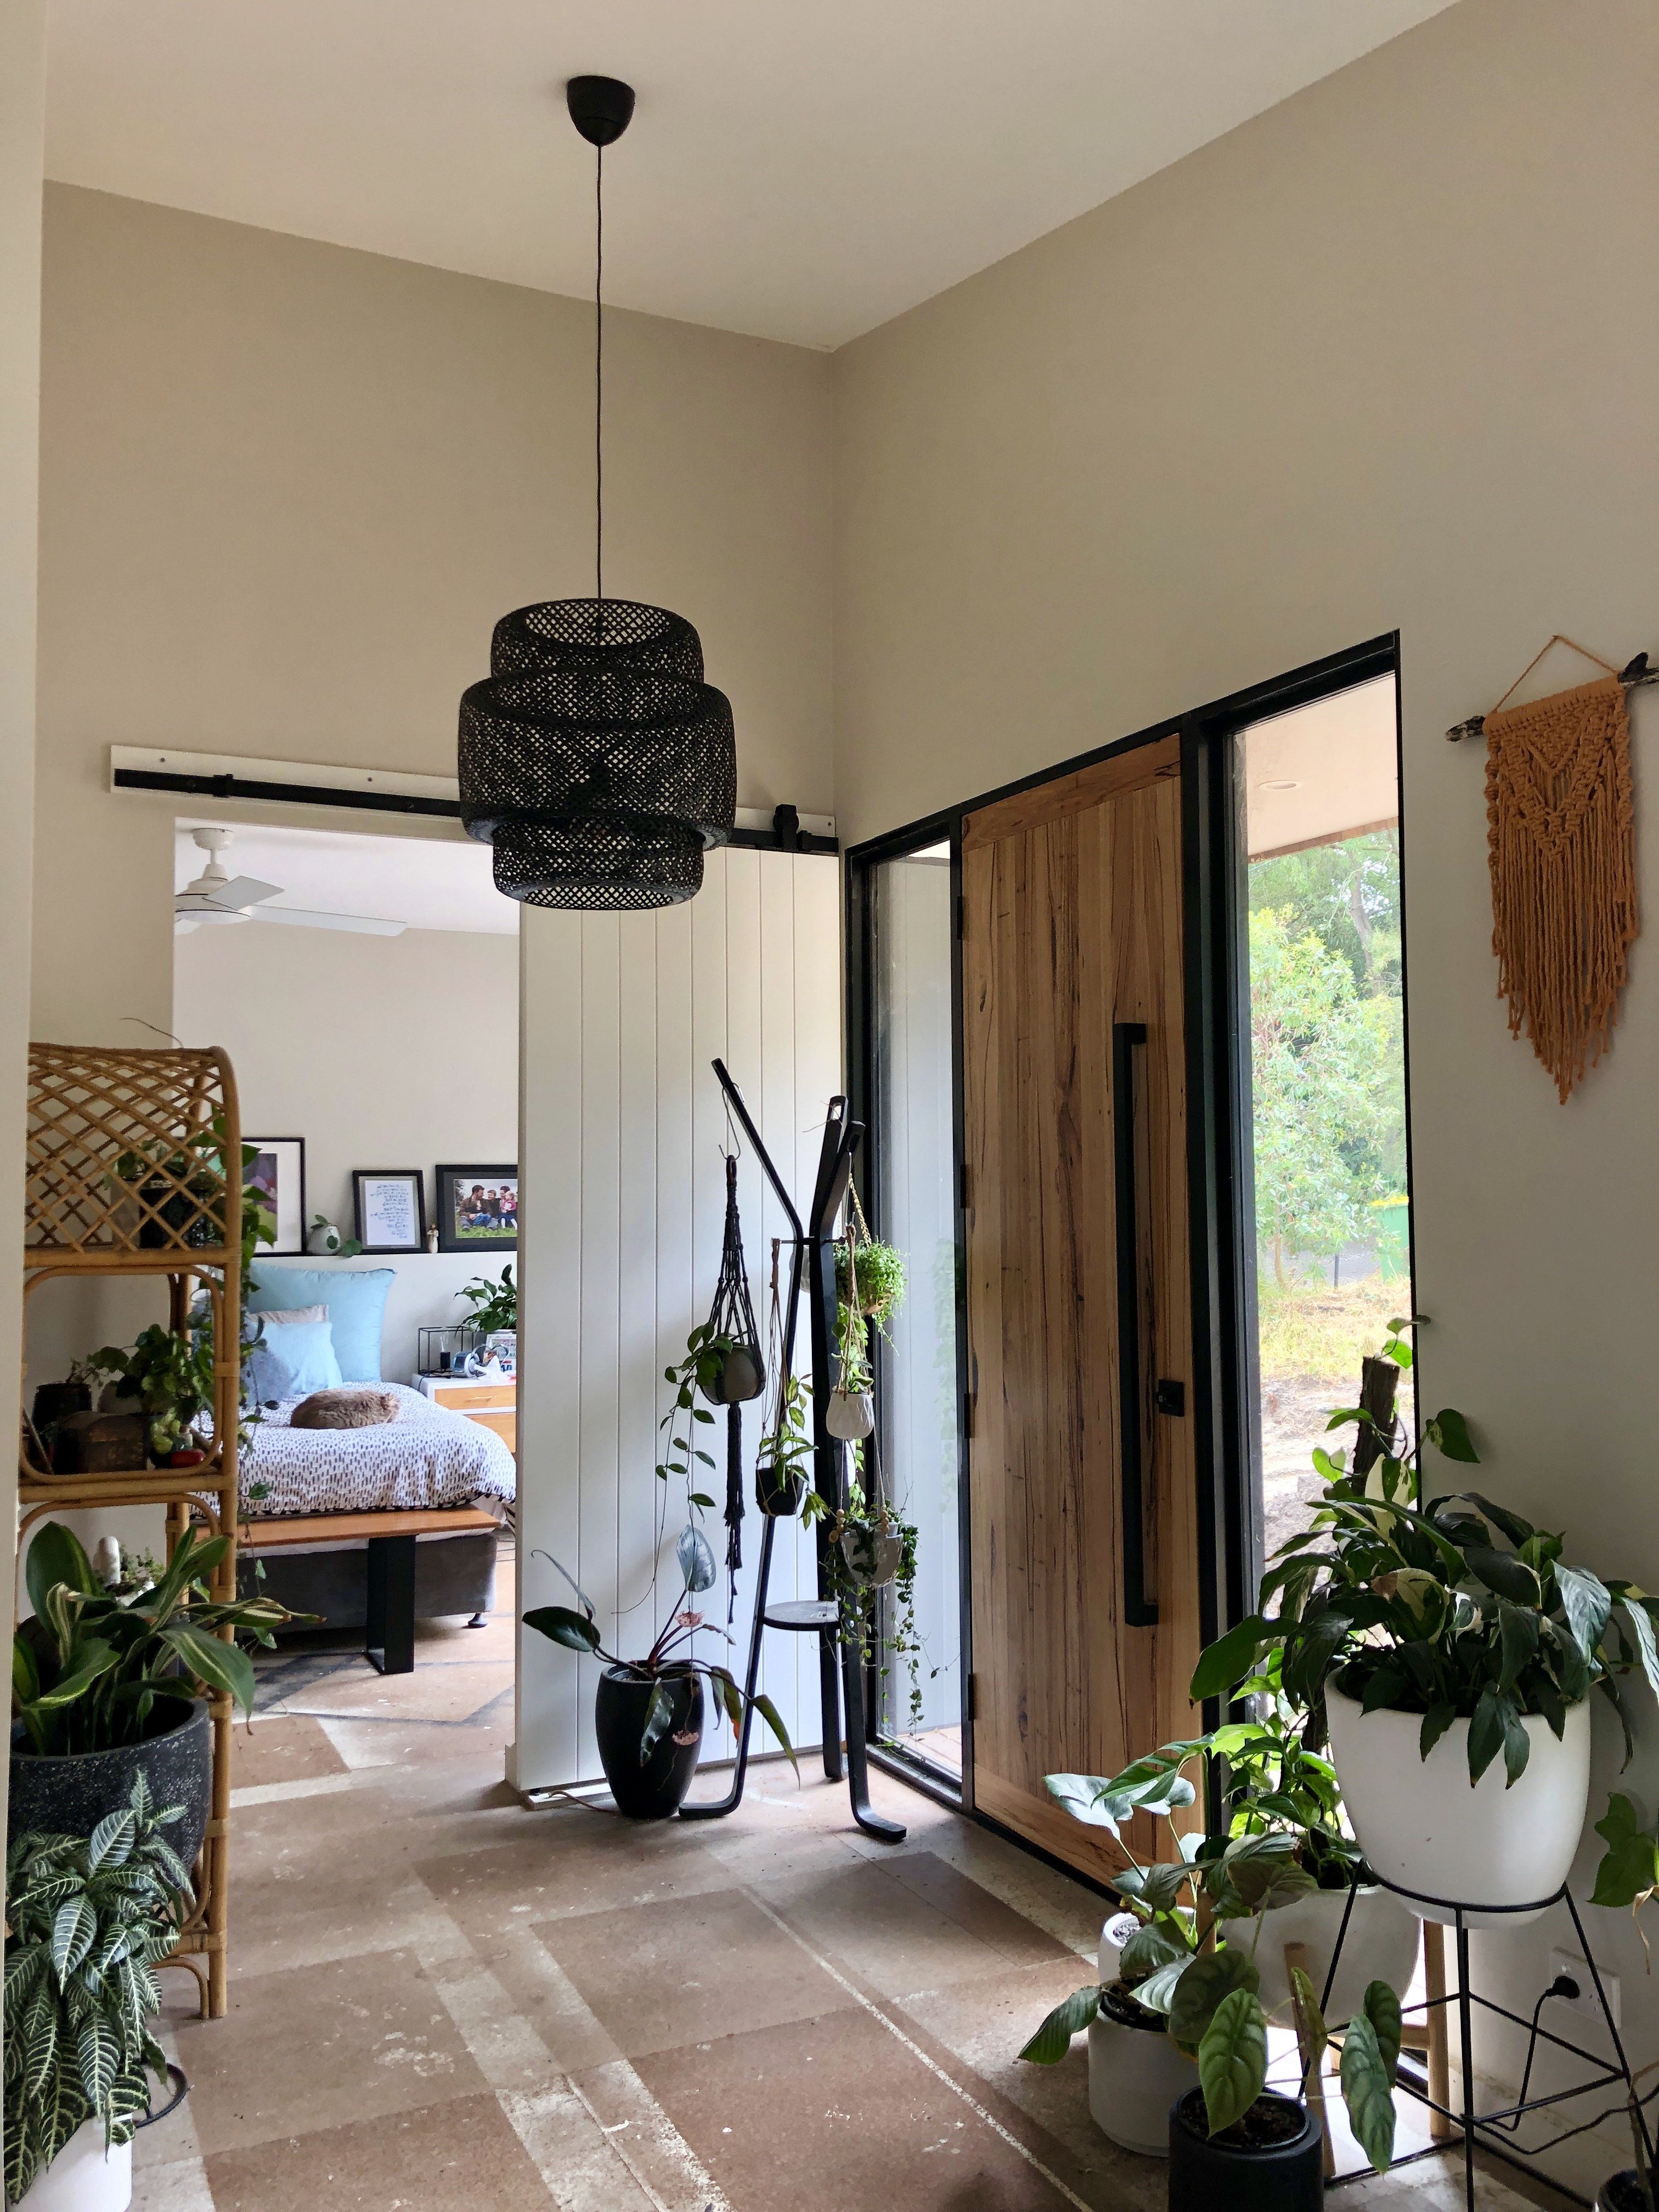 Ikea pendant 'SINNERLIG' painted black sitting pretty in our